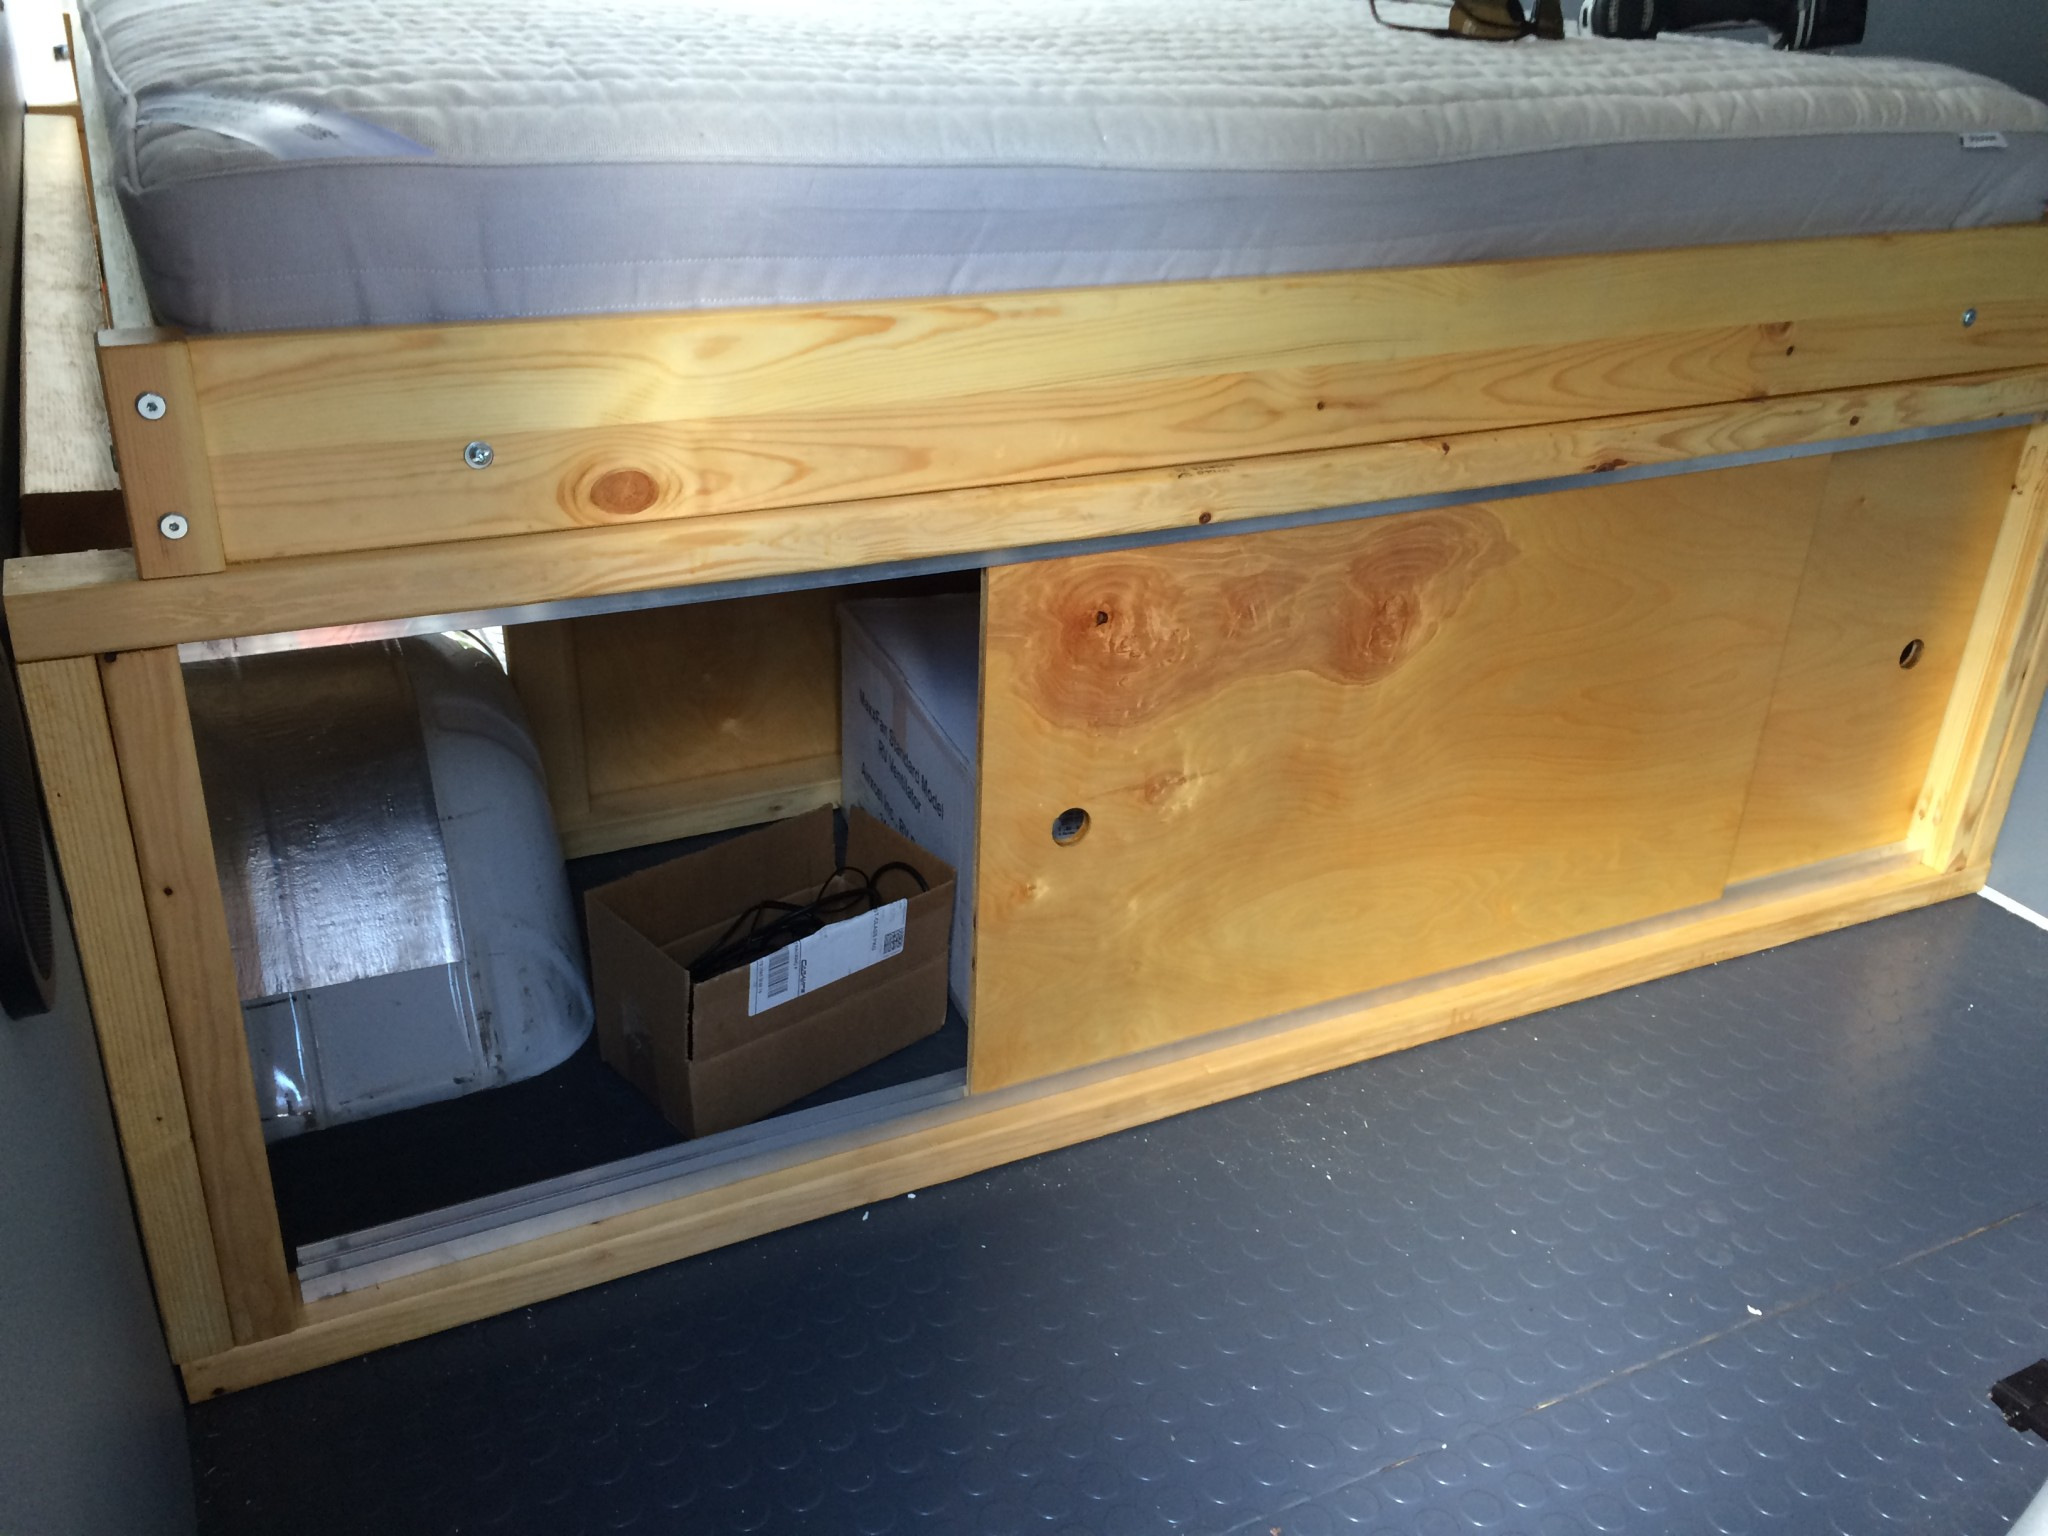 Bed base with sliding doors for the storage area